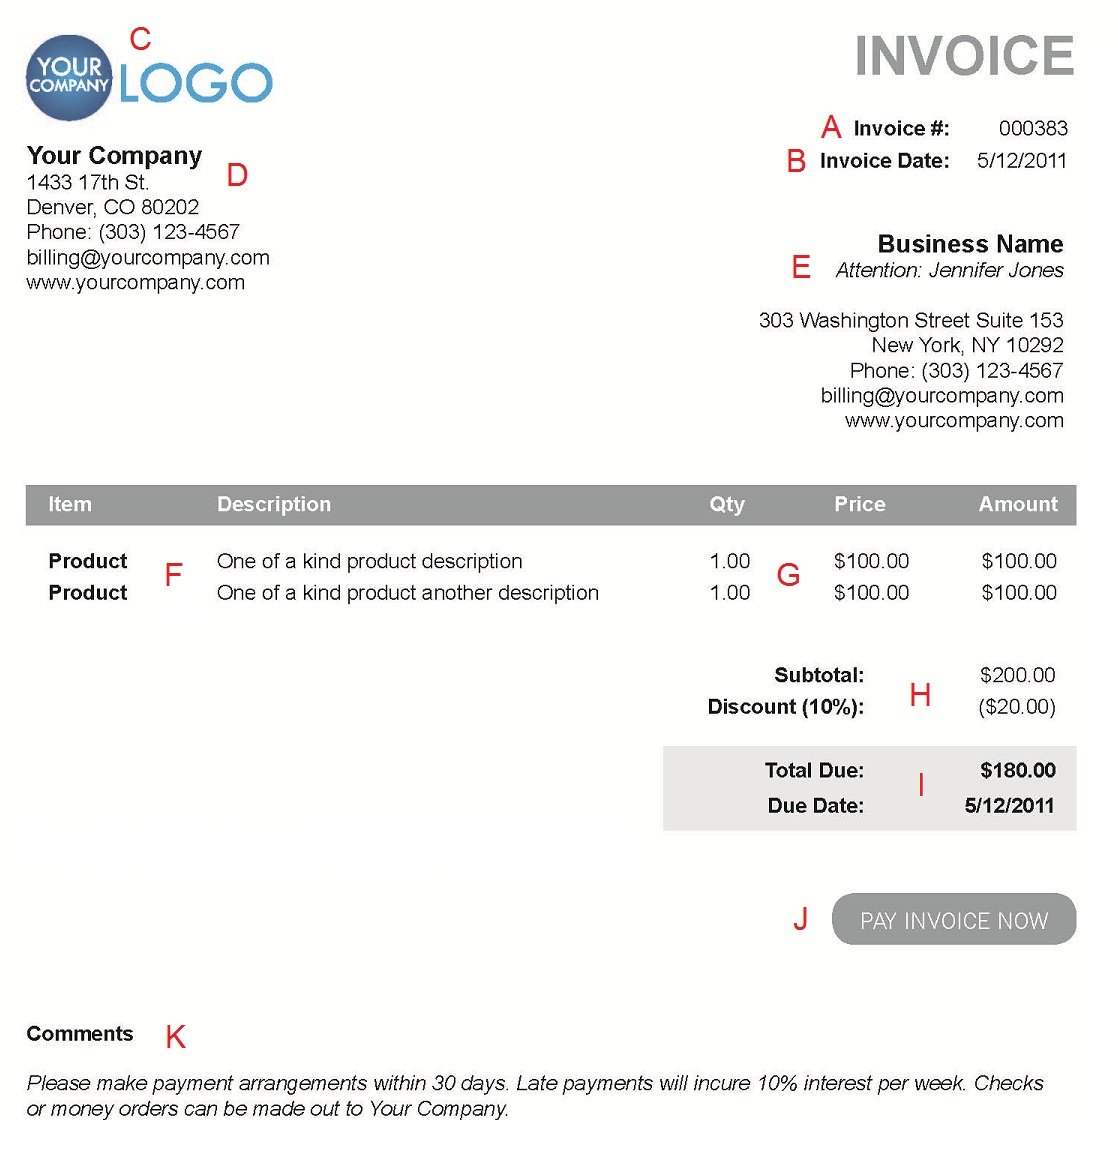 Pigbrotherus  Mesmerizing The  Different Sections Of An Electronic Payment Invoice With Licious A  With Adorable It Consultant Invoice Template Also Requirements Of A Tax Invoice In Addition Excel Sample Invoice And Tax Invoice Sample As Well As Ms Word Invoice Template Mac Additionally Rogers Invoice Online From Paysimplecom With Pigbrotherus  Licious The  Different Sections Of An Electronic Payment Invoice With Adorable A  And Mesmerizing It Consultant Invoice Template Also Requirements Of A Tax Invoice In Addition Excel Sample Invoice From Paysimplecom